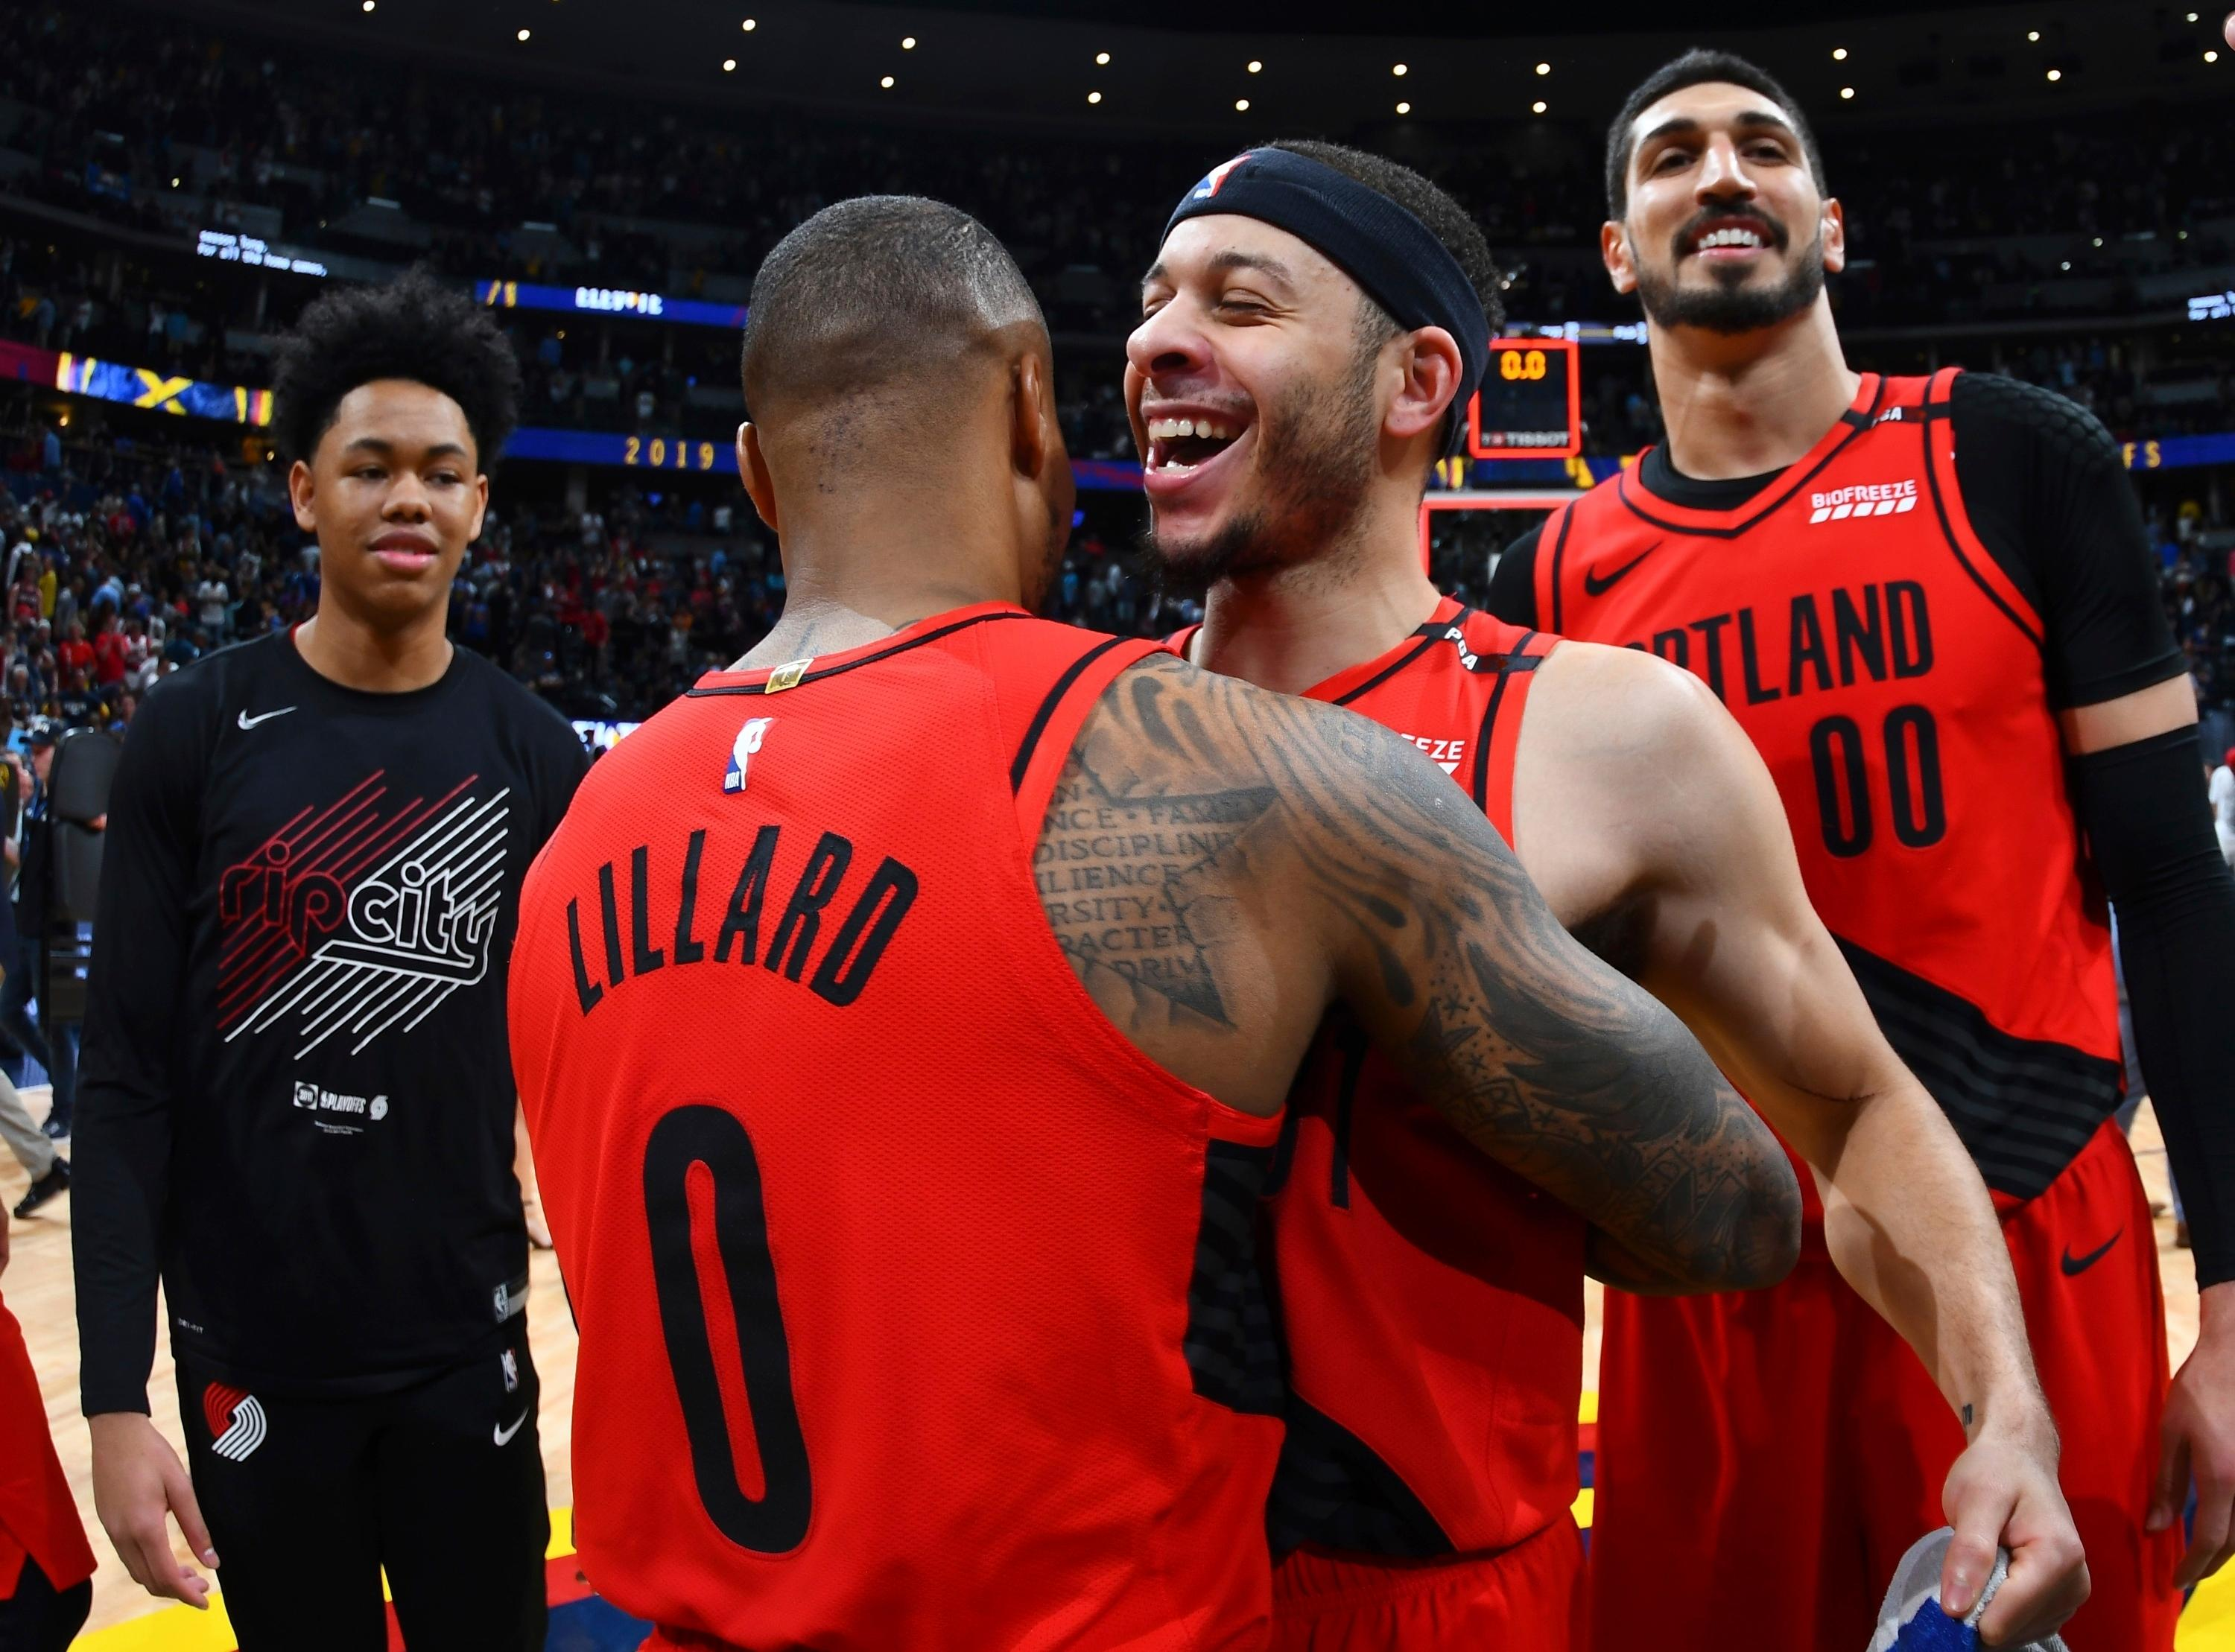 CORRECTS BYLINE IN SIGNOFF TO JOHN LEYBA NOT DAVID ZALUBOWSKI From front, Portland Trail Blazers guard Damian Lillard celebrates with guard Seth Curry and center Enes Kanter after the second half of Game 7 of an NBA basketball second-round playoff series Sunday, May 12, 2019, in Denver. The Trail Blazers won 100-96. (AP Photo/John Leyba)